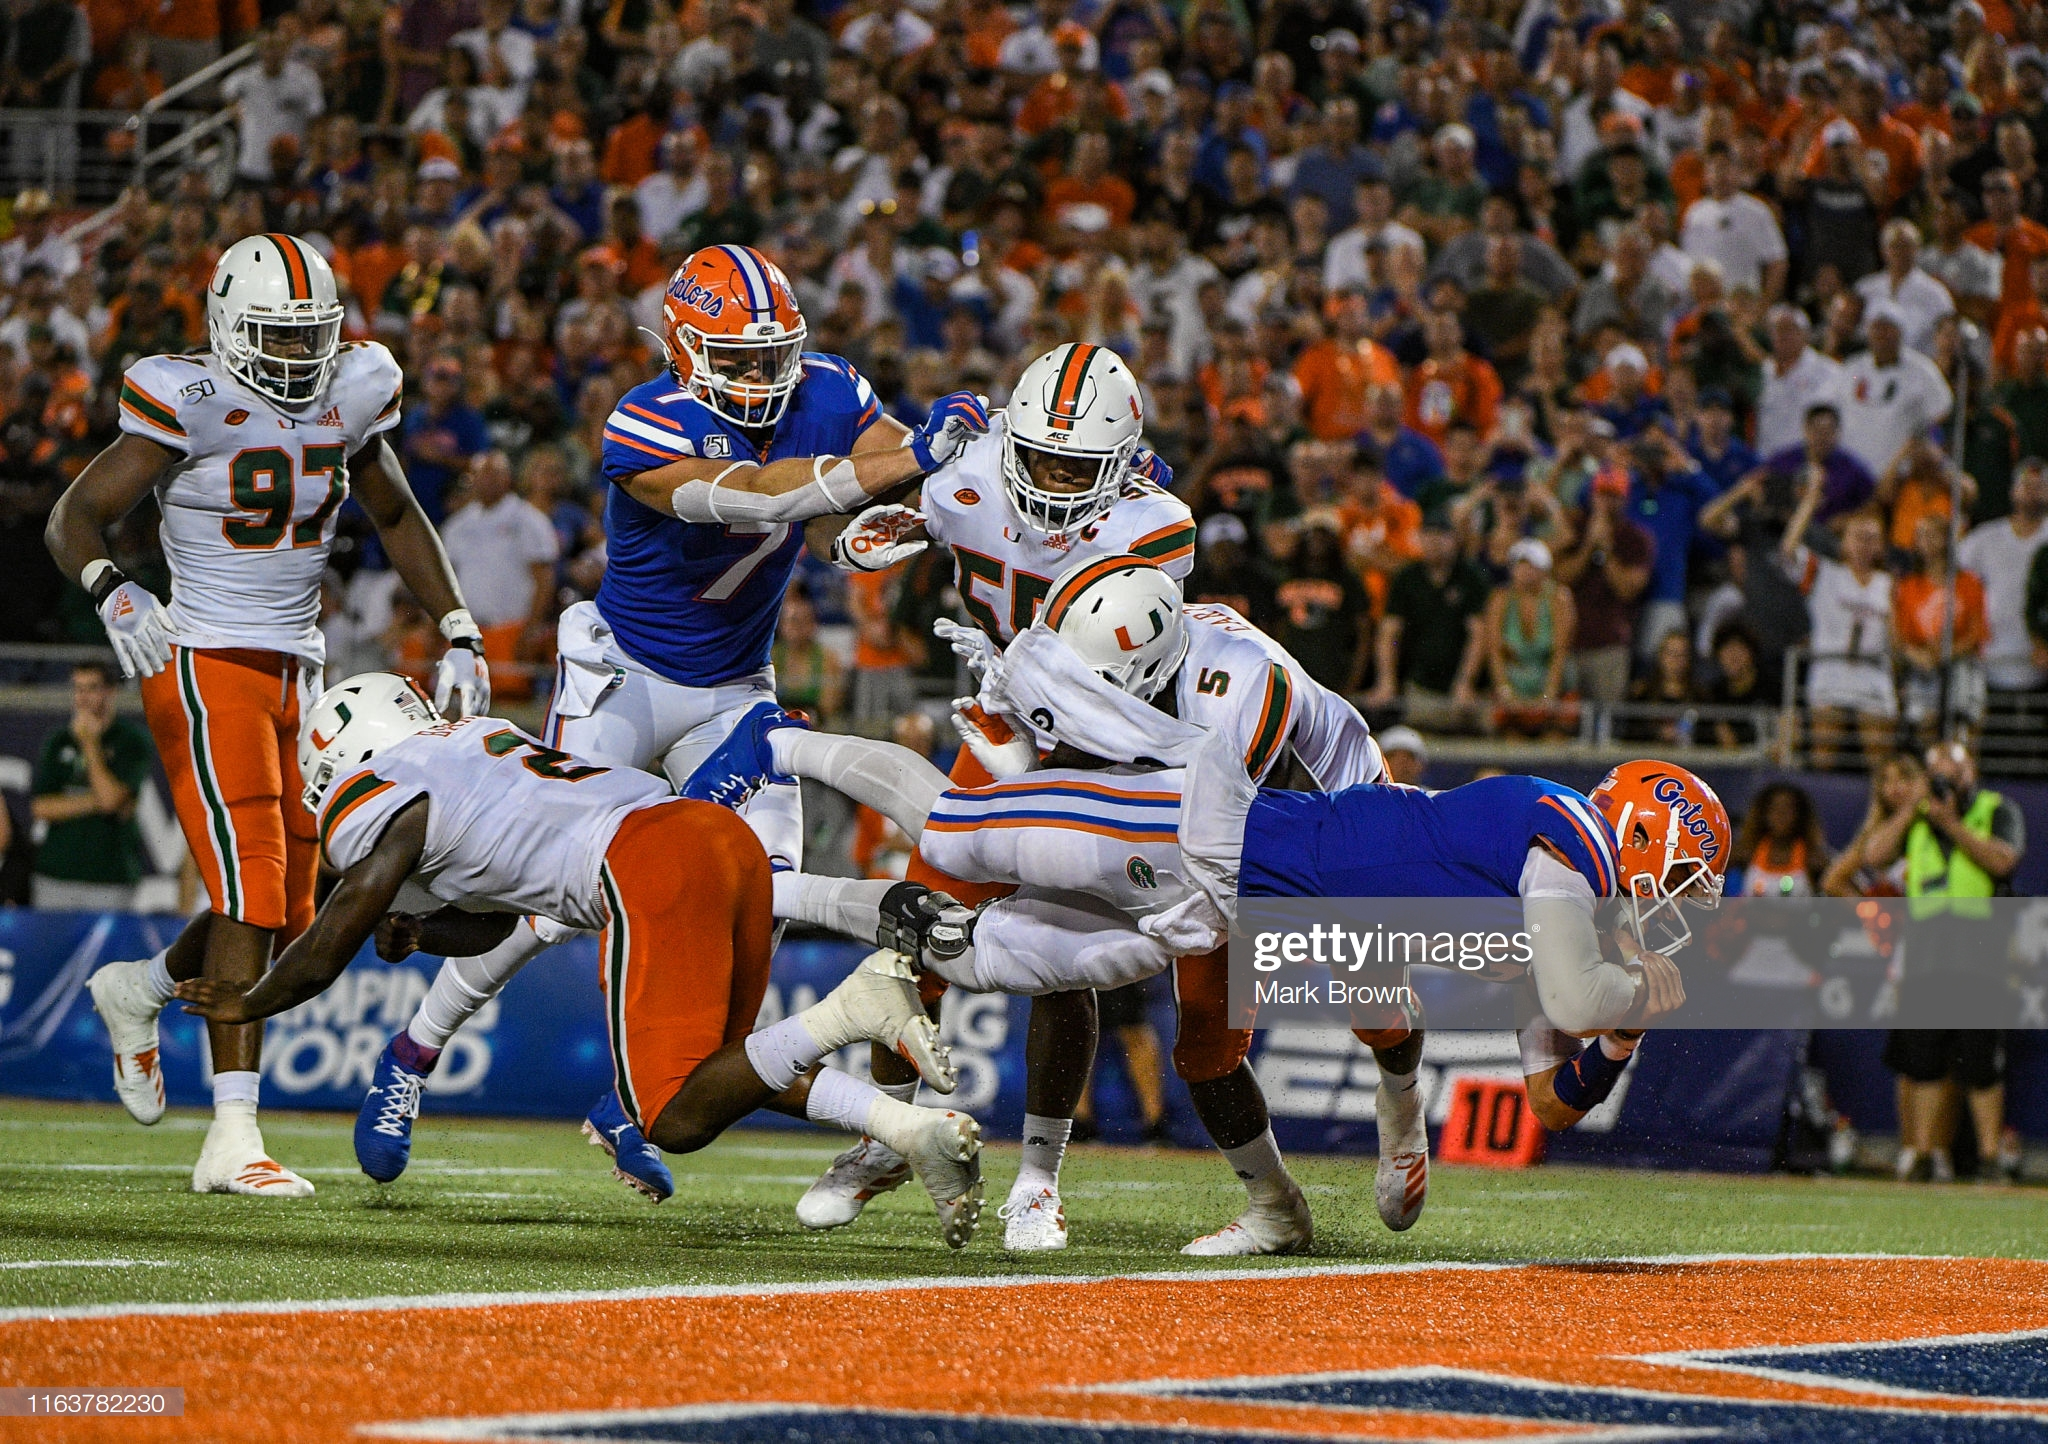 Florida Gators quarterback Feleipe Franks scores a rushing touchdown against the Miami Hurricanes in the 2019 Camping World Kickoff